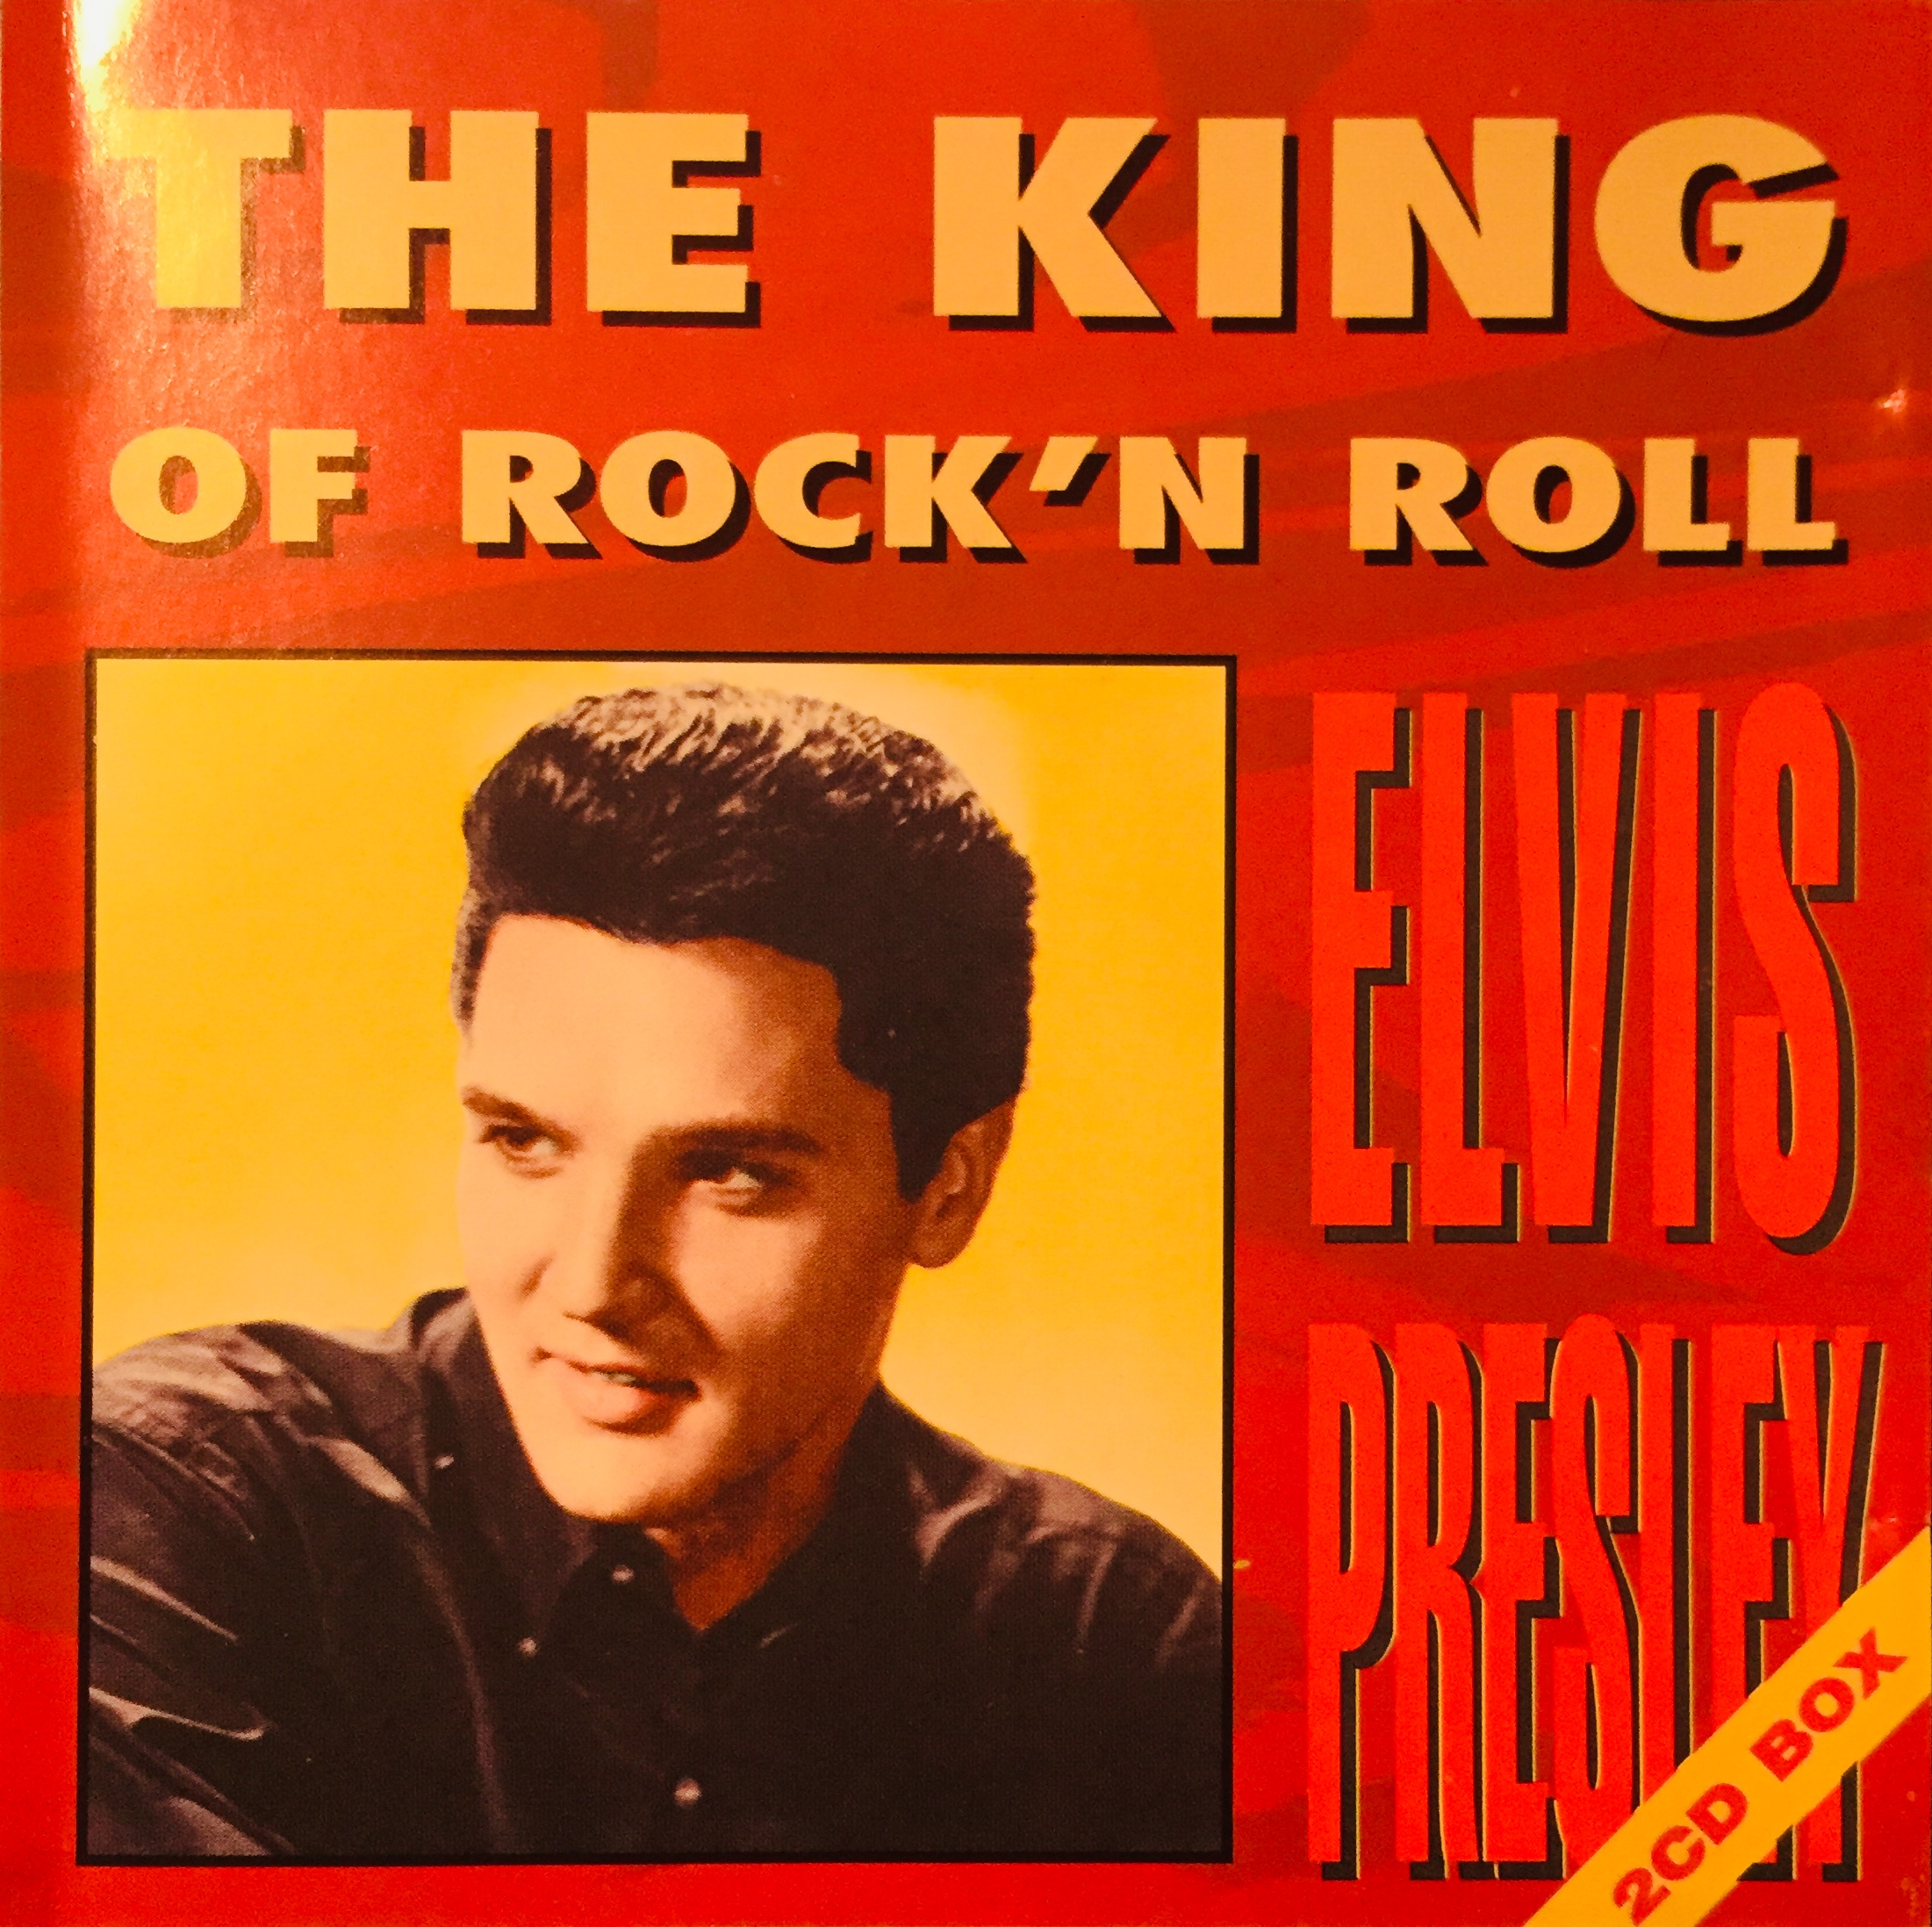 Elvis Presley - The King of Rock 'n' Roll - 2xCD /plast/